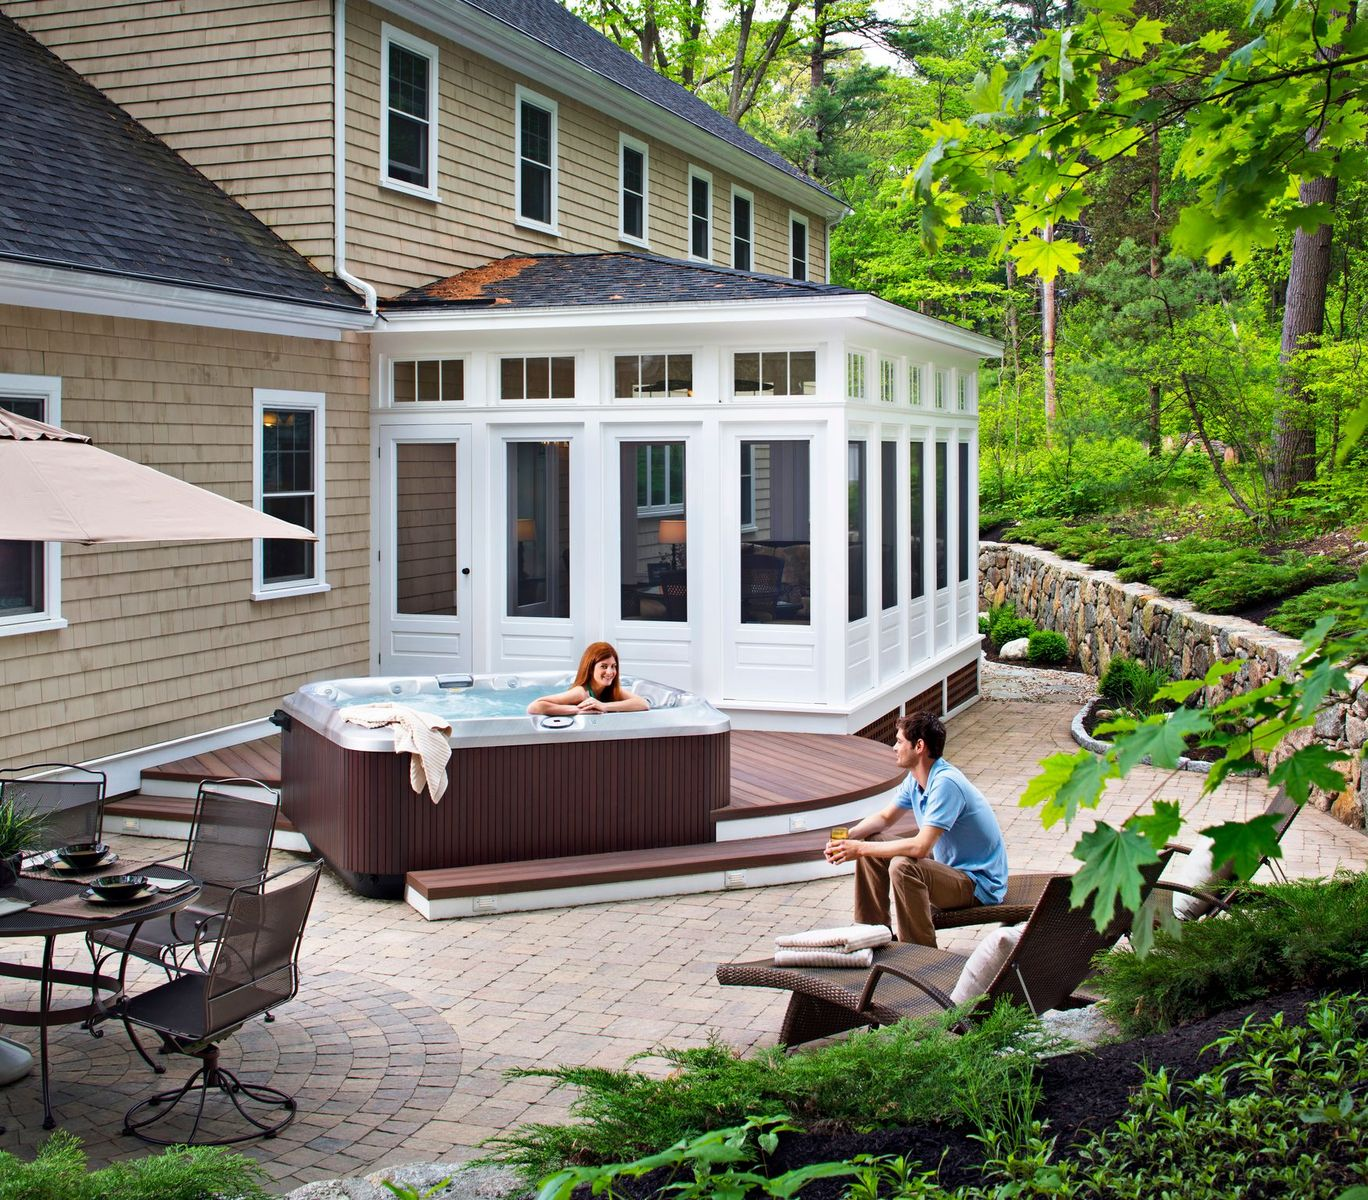 Let's-discuss-how-a-new-outdoor-living-space-from-Archadeck-can-enhance-your-lifestyle